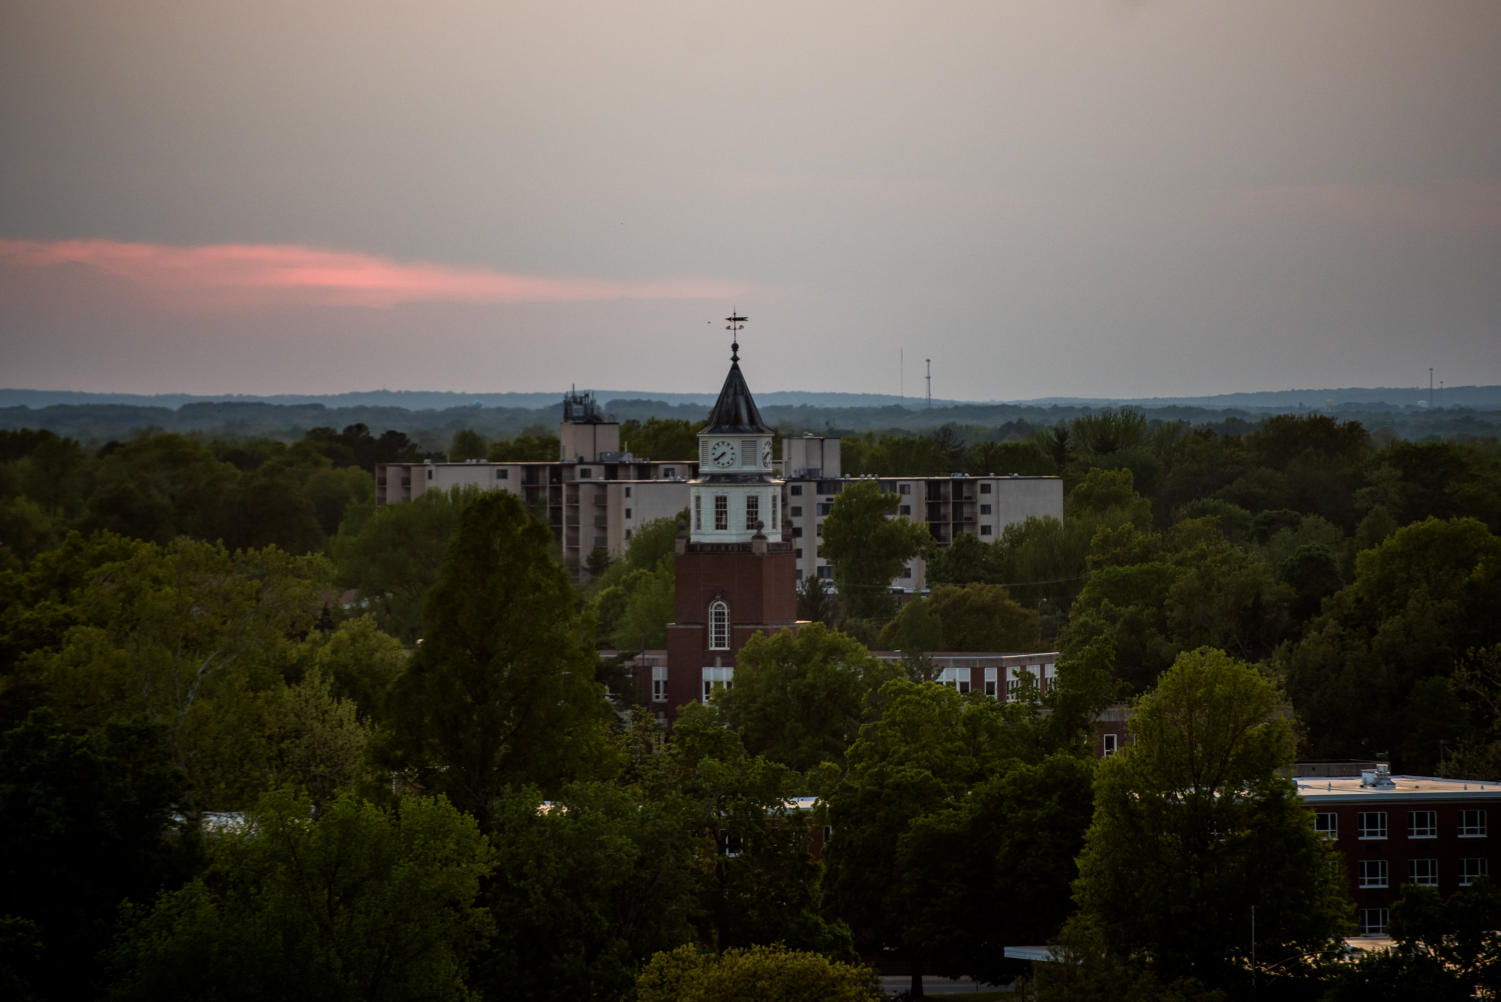 Pulliam Hall towers over the Carbondale skyline on Tuesday, May 8, 2018, at Southern Illinois University in Carbondale, Illinois.